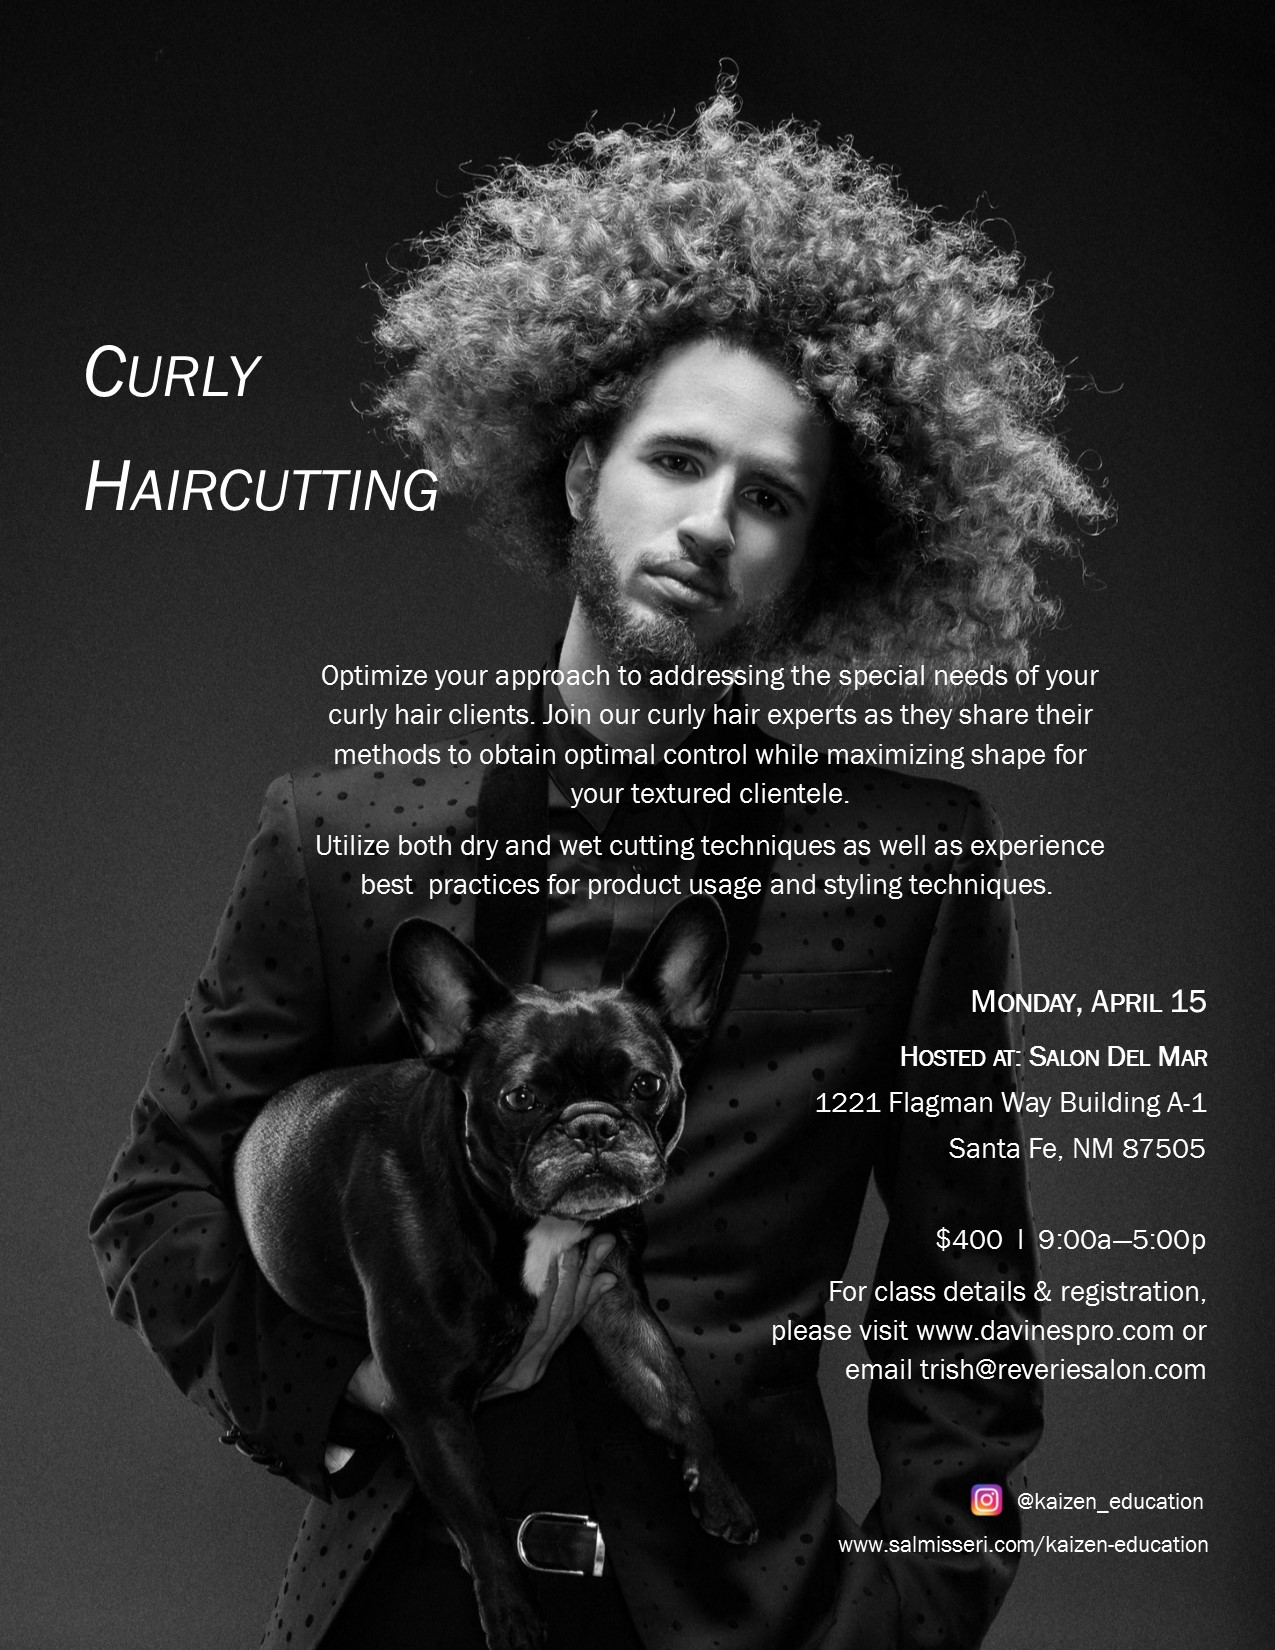 CurlyHaircuttingApril15 @Salon Del Mar.jpg